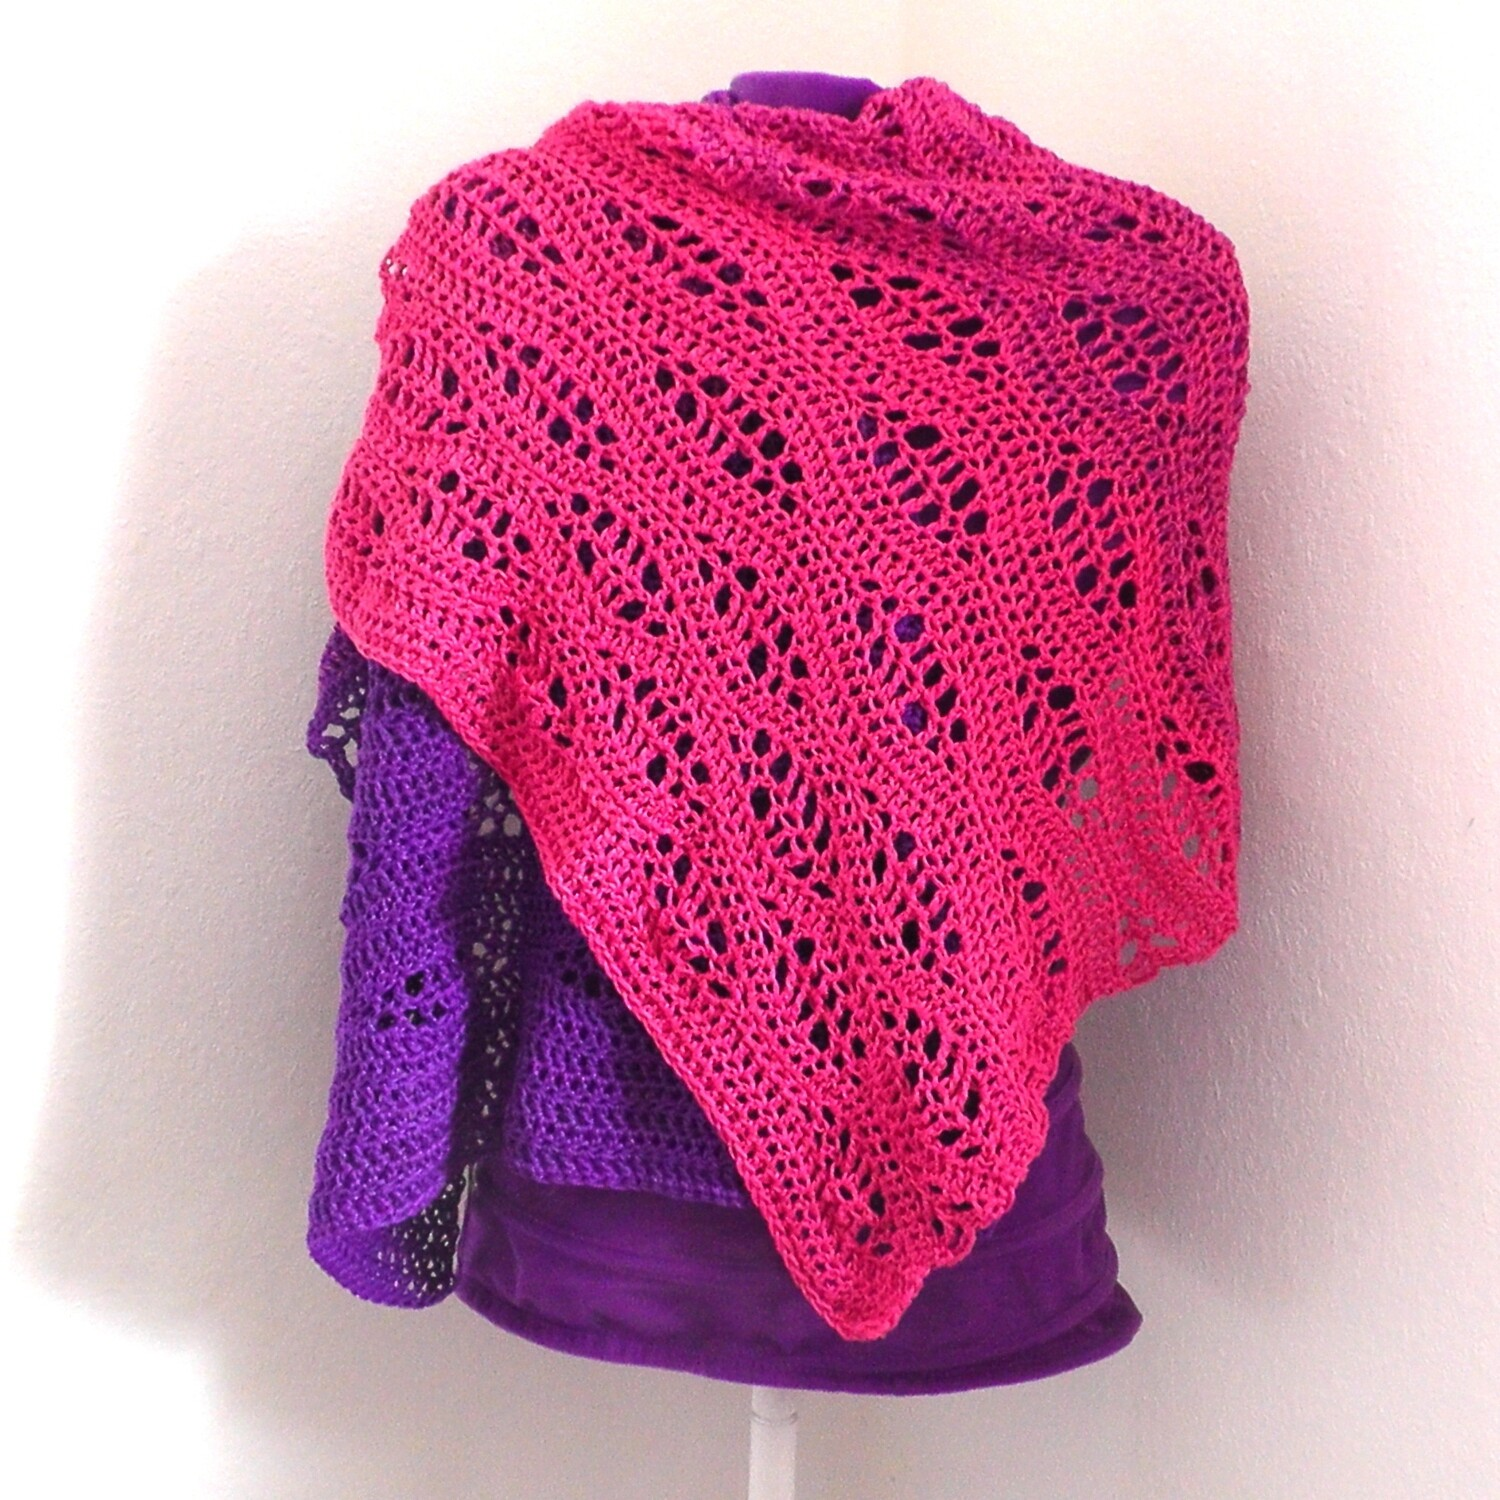 Surfer shawl crochet pattern video & PDF - Woolpedia®